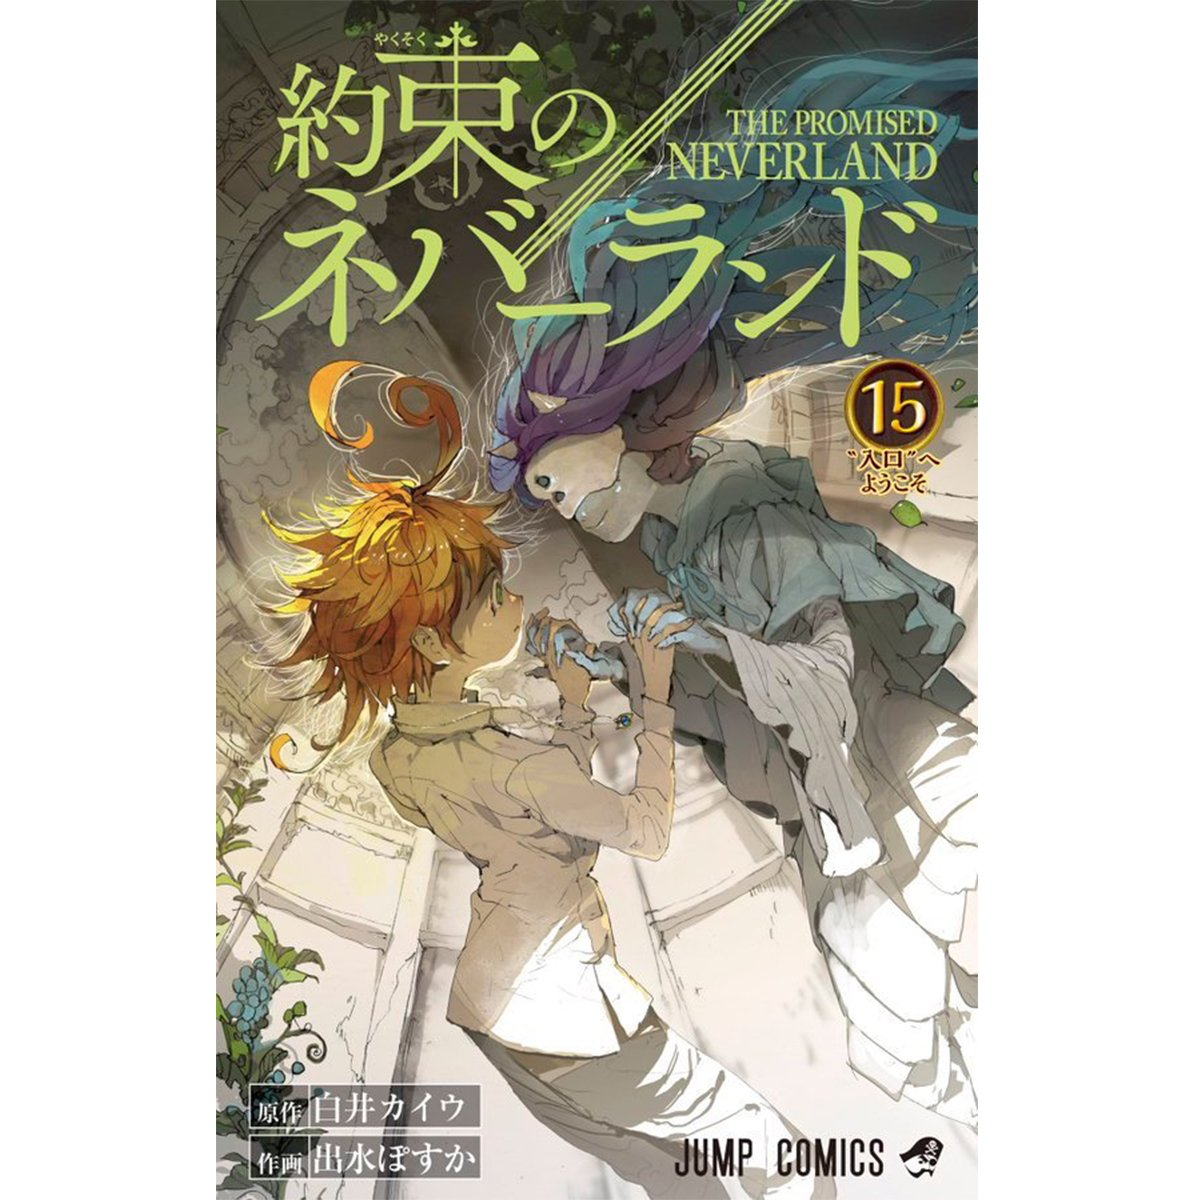 The Promised Neverland 15 - Japanese Edition / Posuka Demizu / Kaiu Shirai (Shueisha)